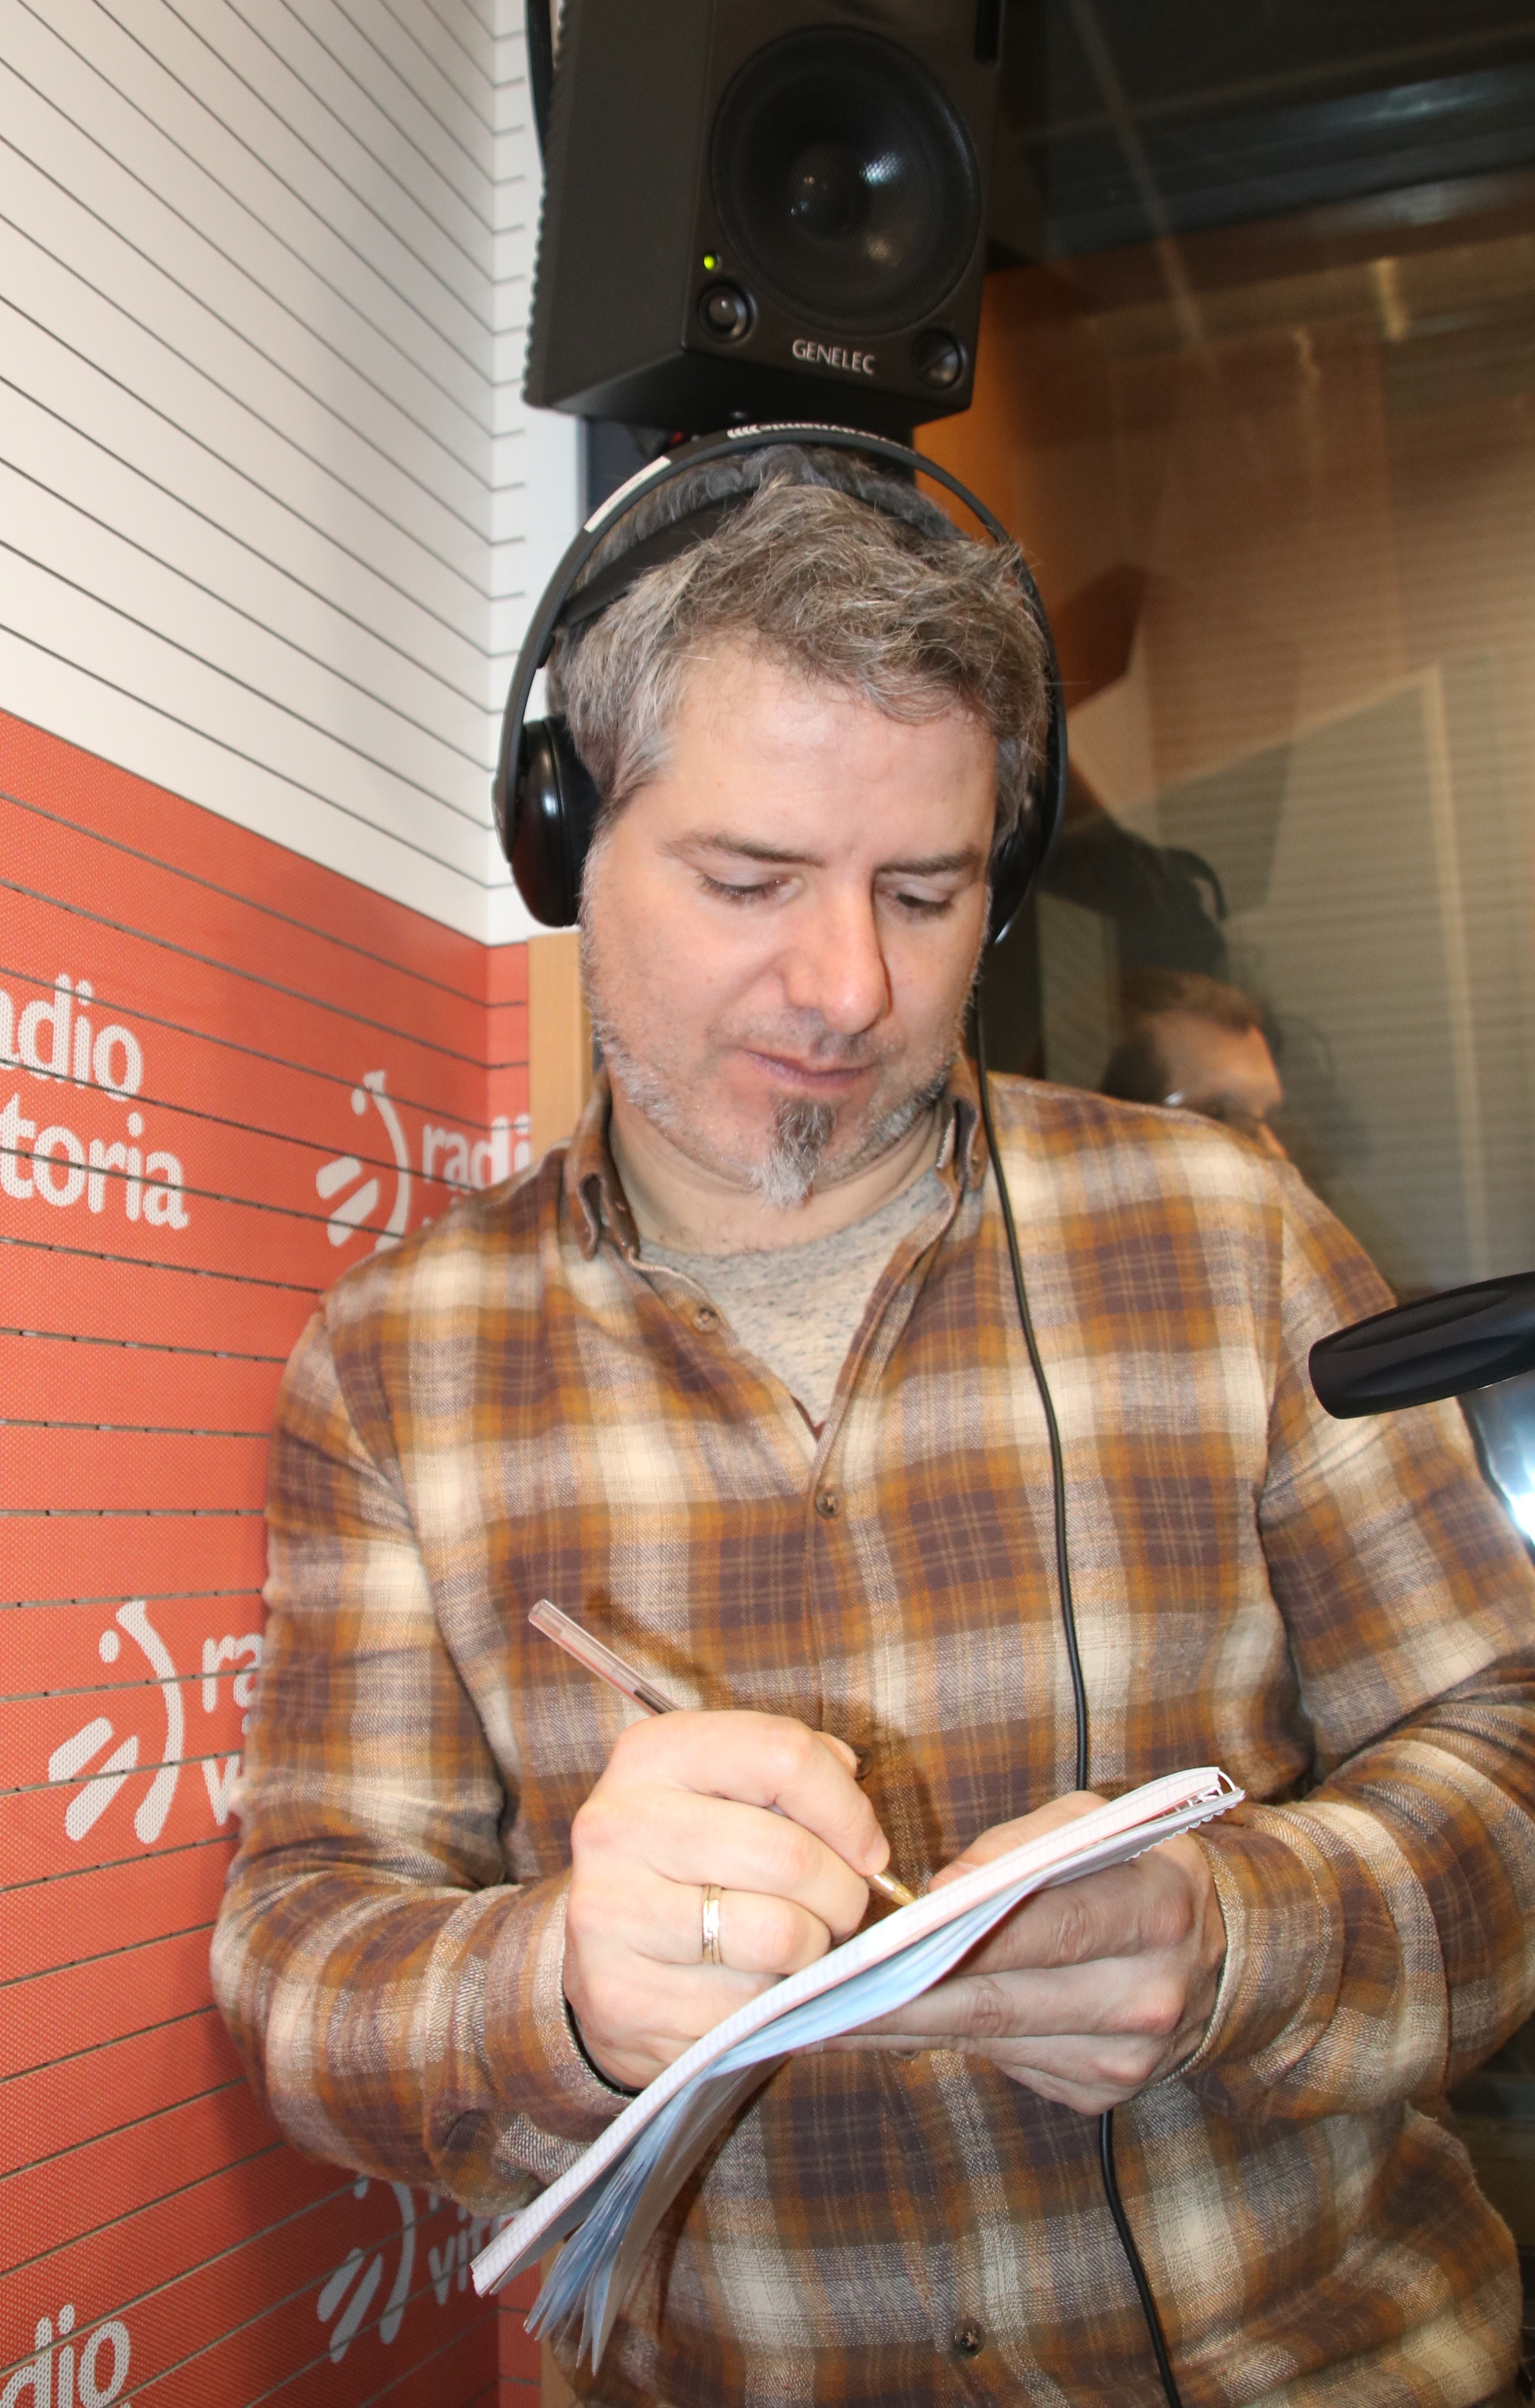 09_01_19_Radio_Vitoria__12_.JPG